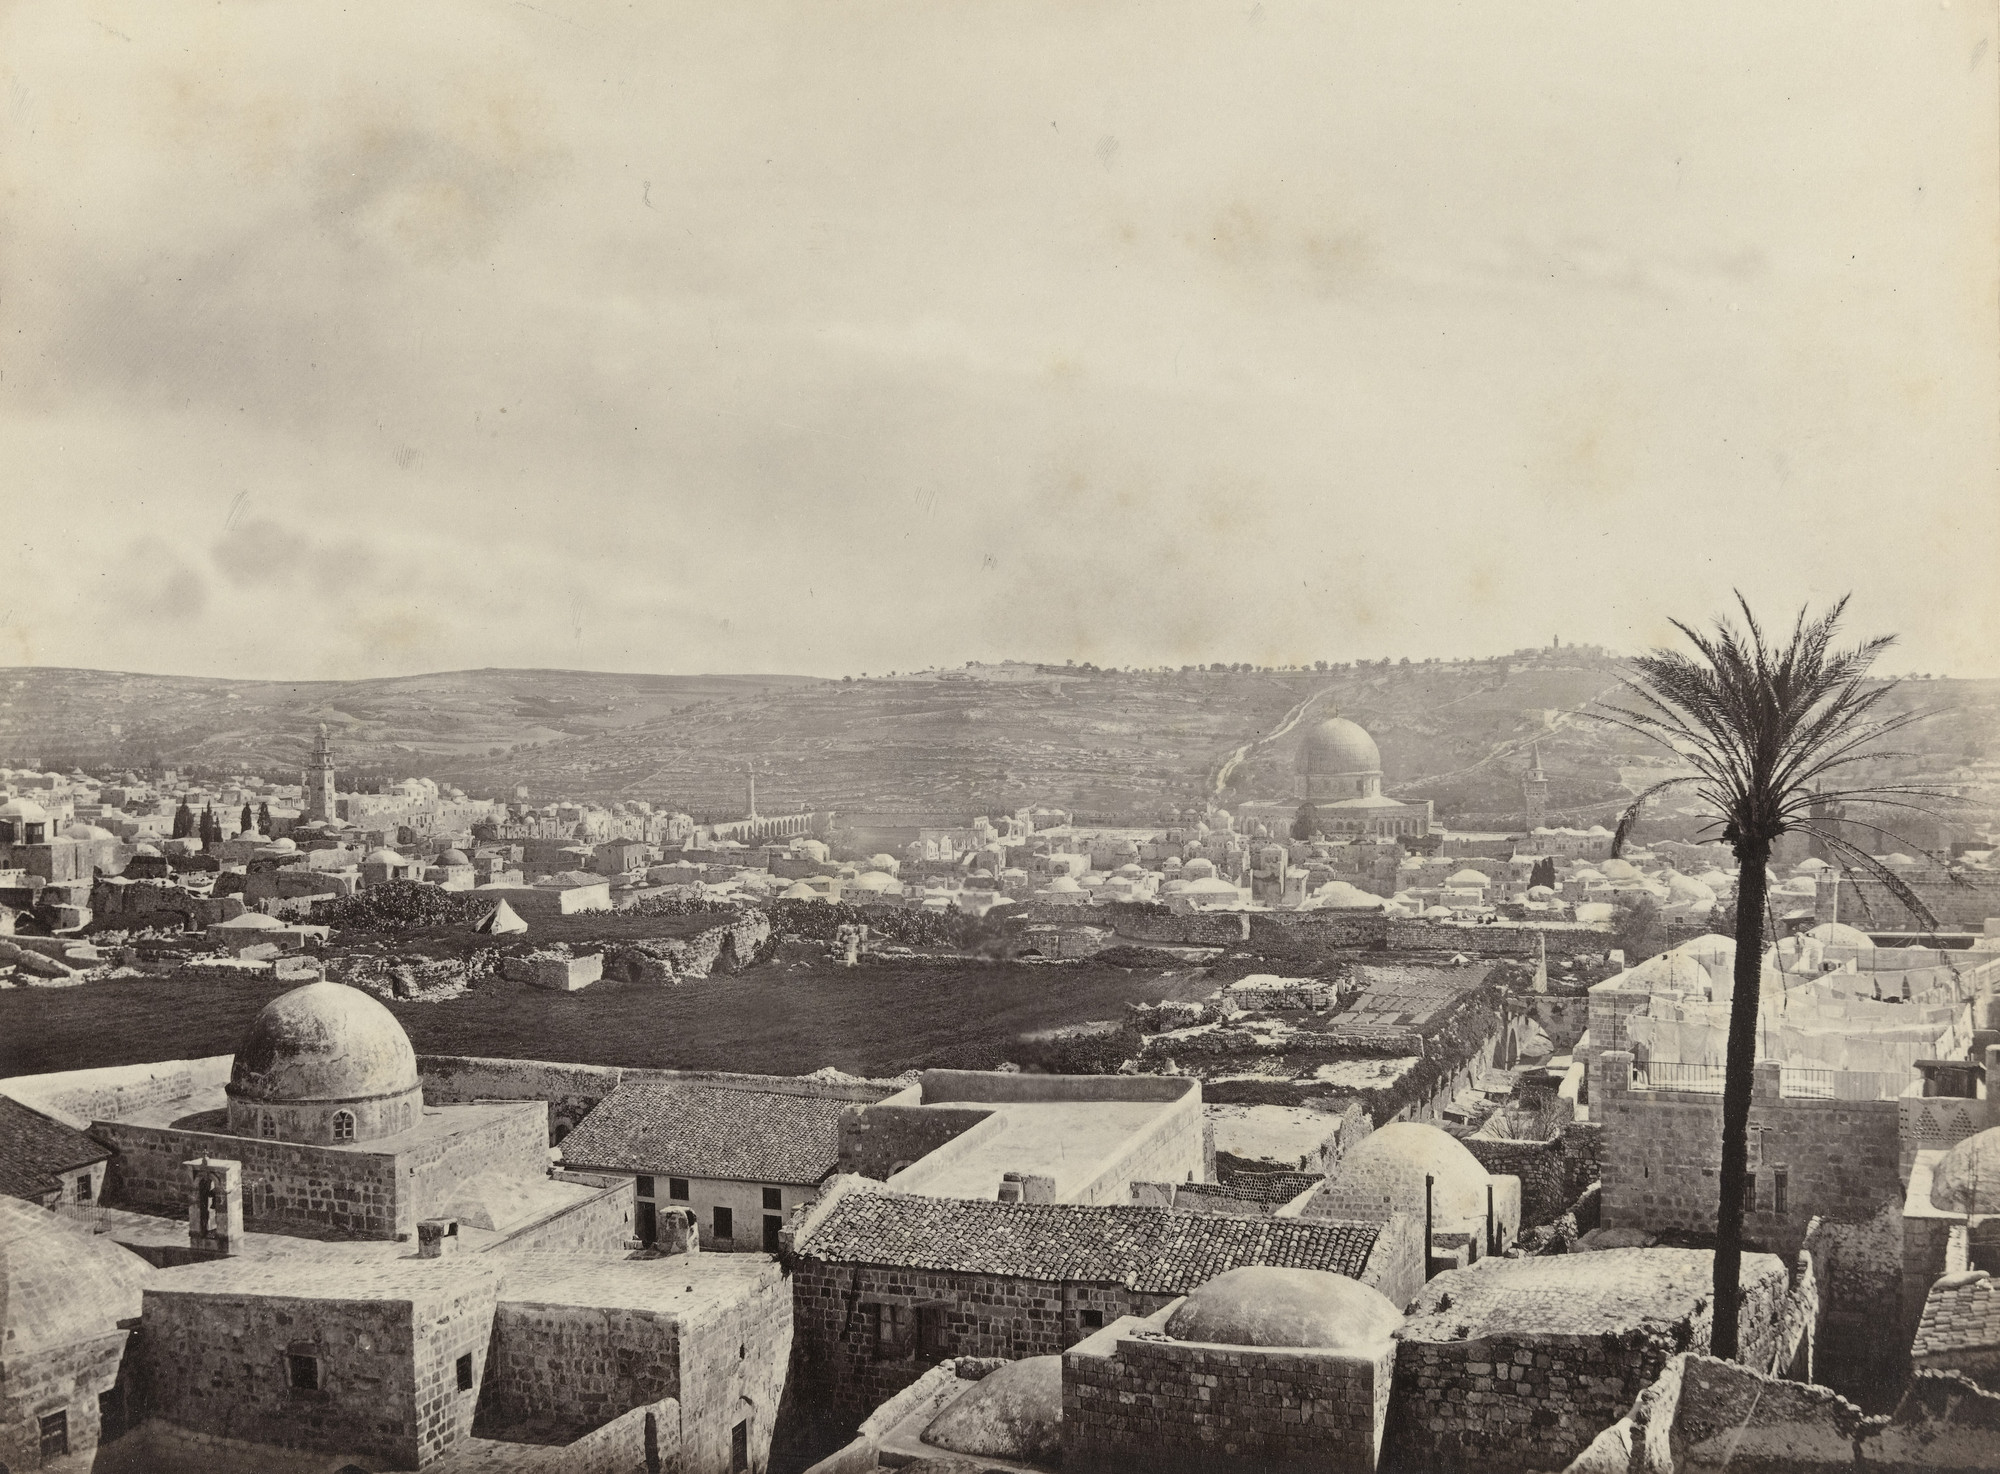 Francis Frith. Jerusalem, from Mount Zion, with Mosque of Omar (#571). c. 1860